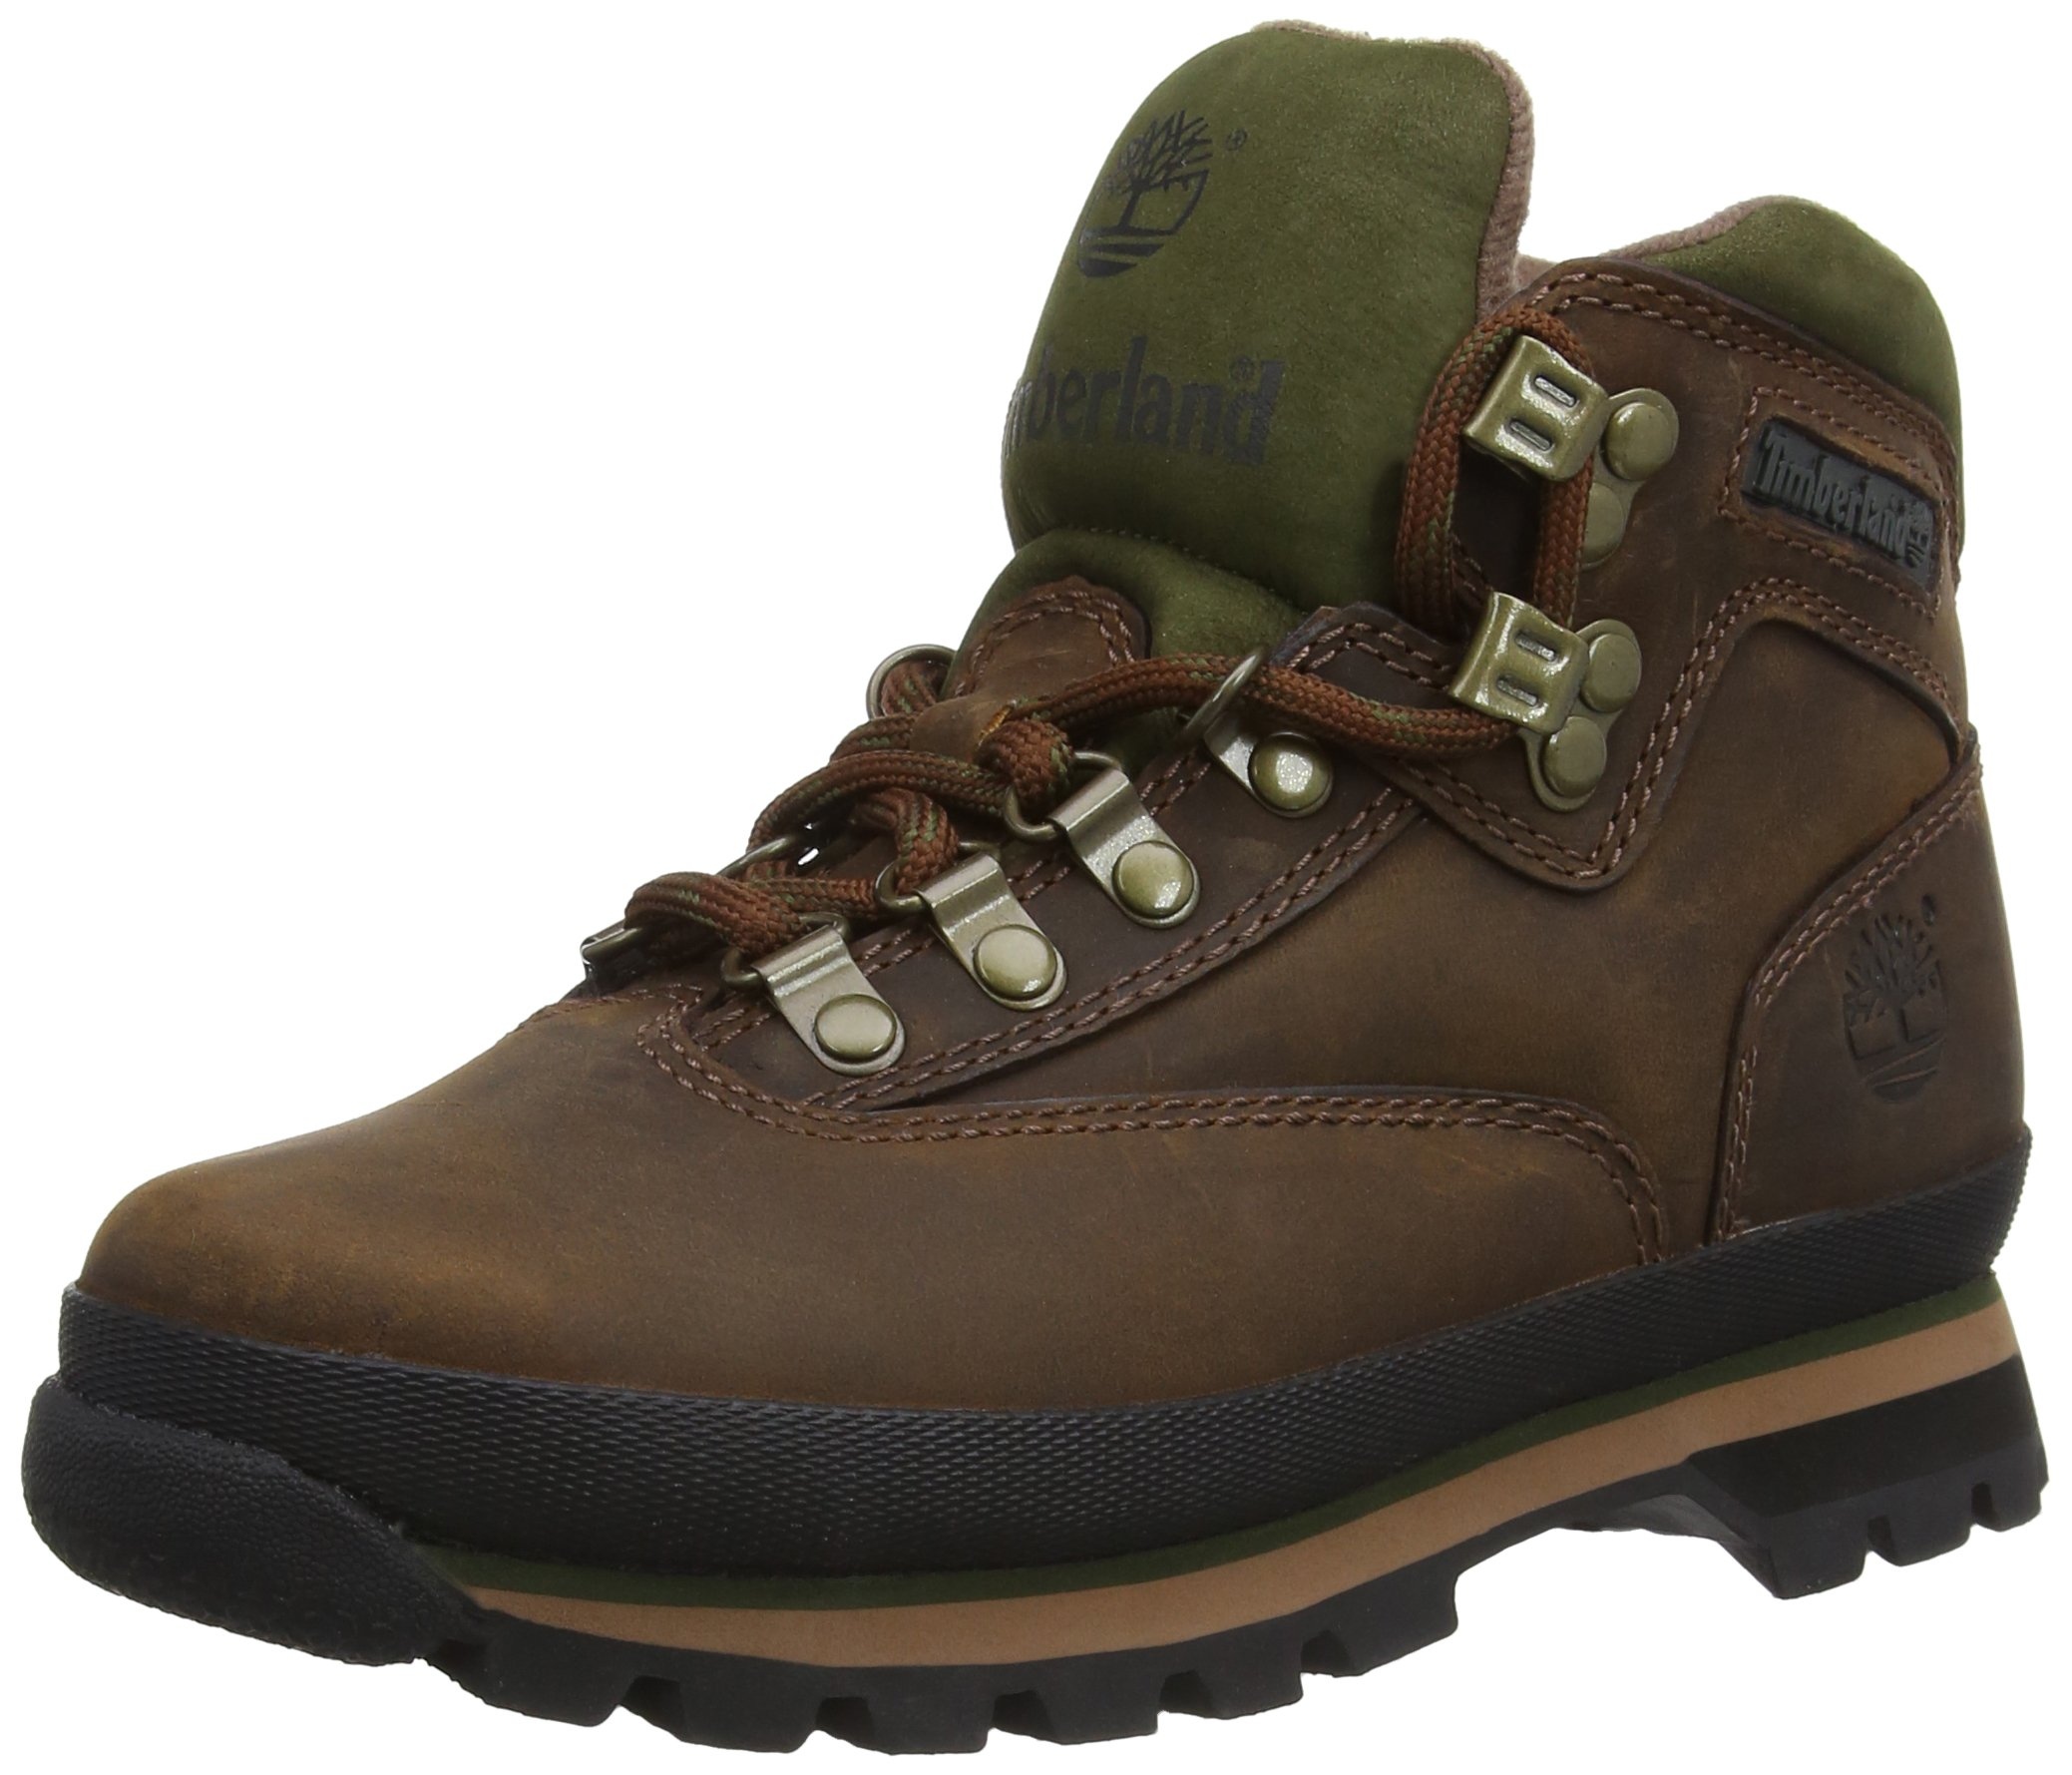 Timberland Women's Euro Hiker Leather Ankle Boot,Brown,10 M US